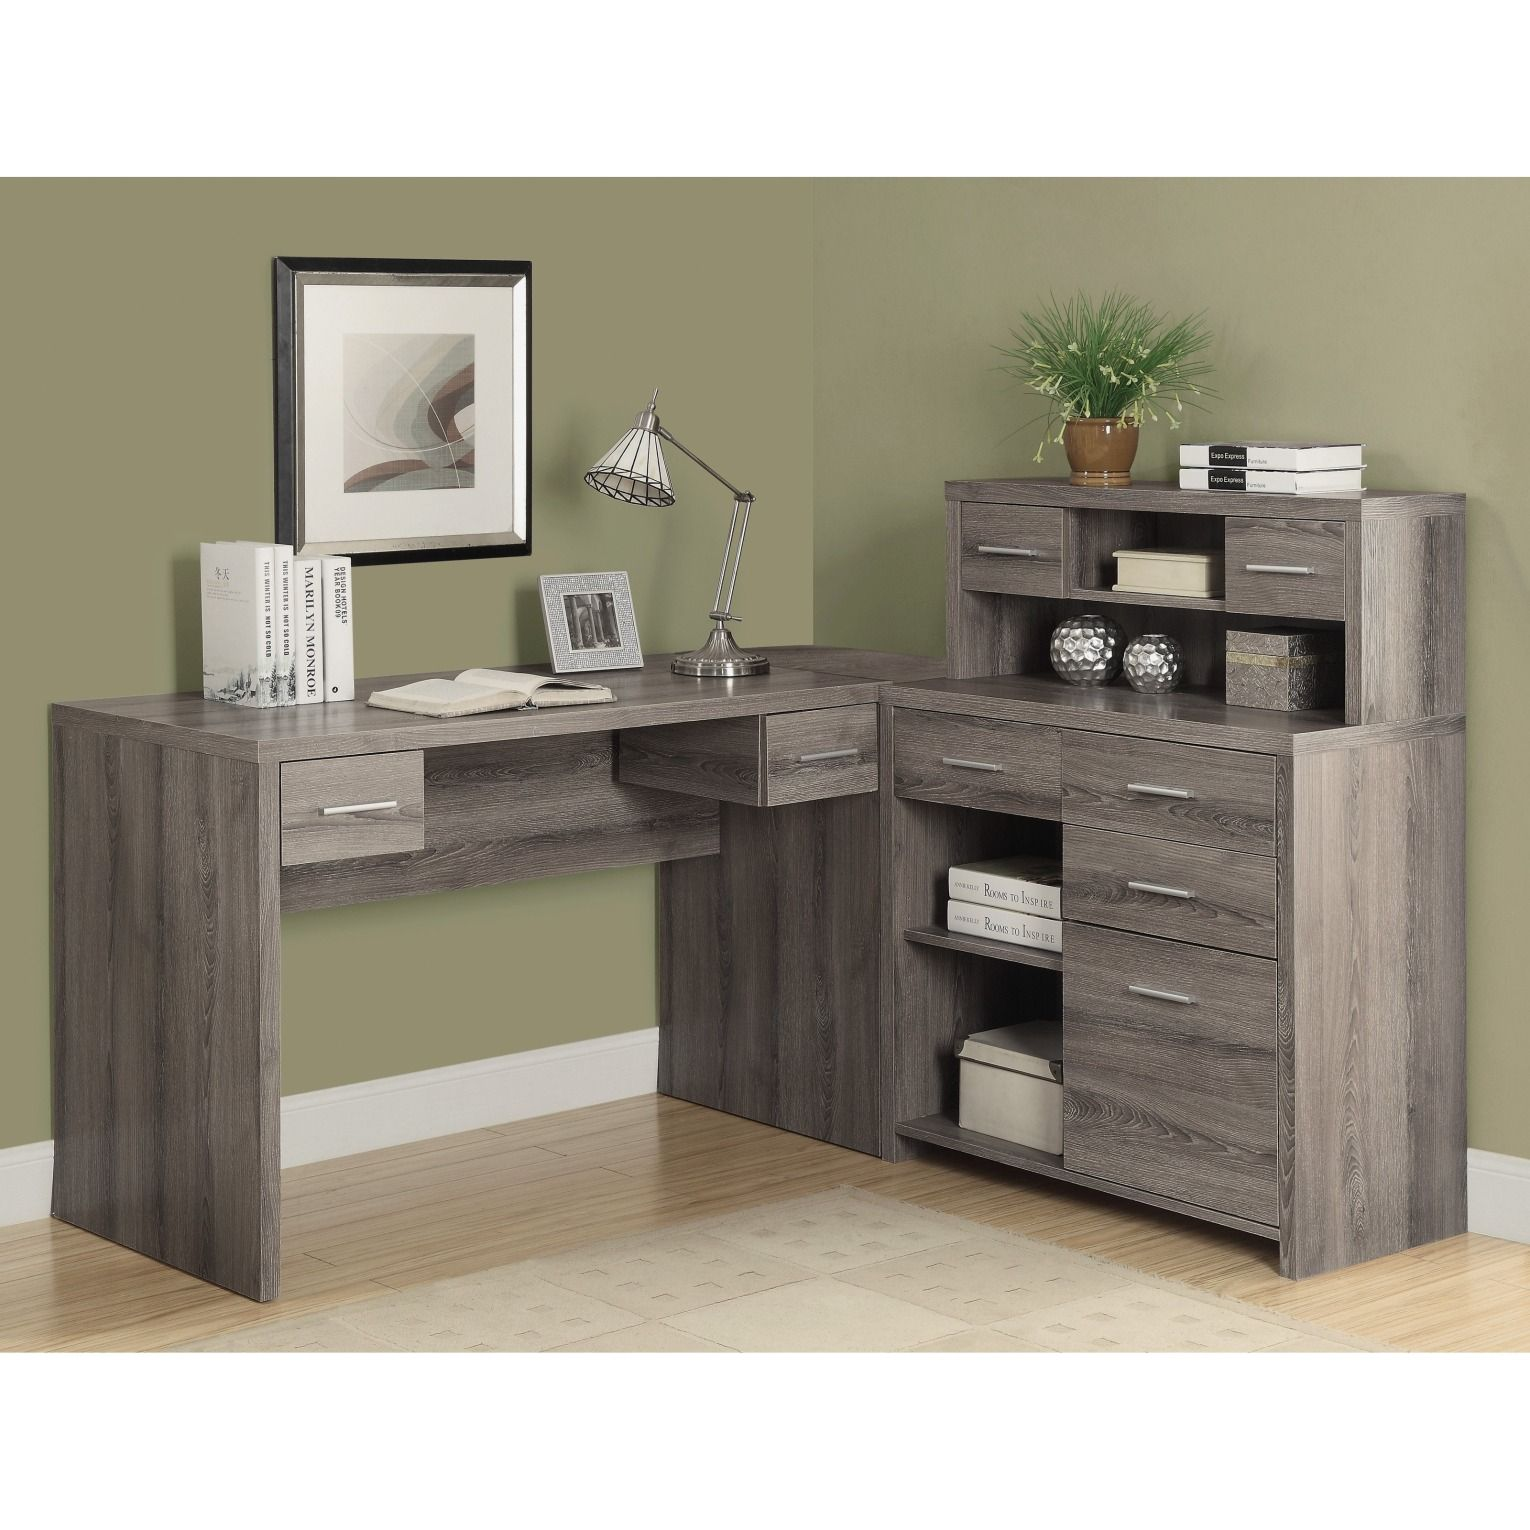 Quality Home Office Desks: Smart Storage And Contemporary Style, This L-shaped Desk